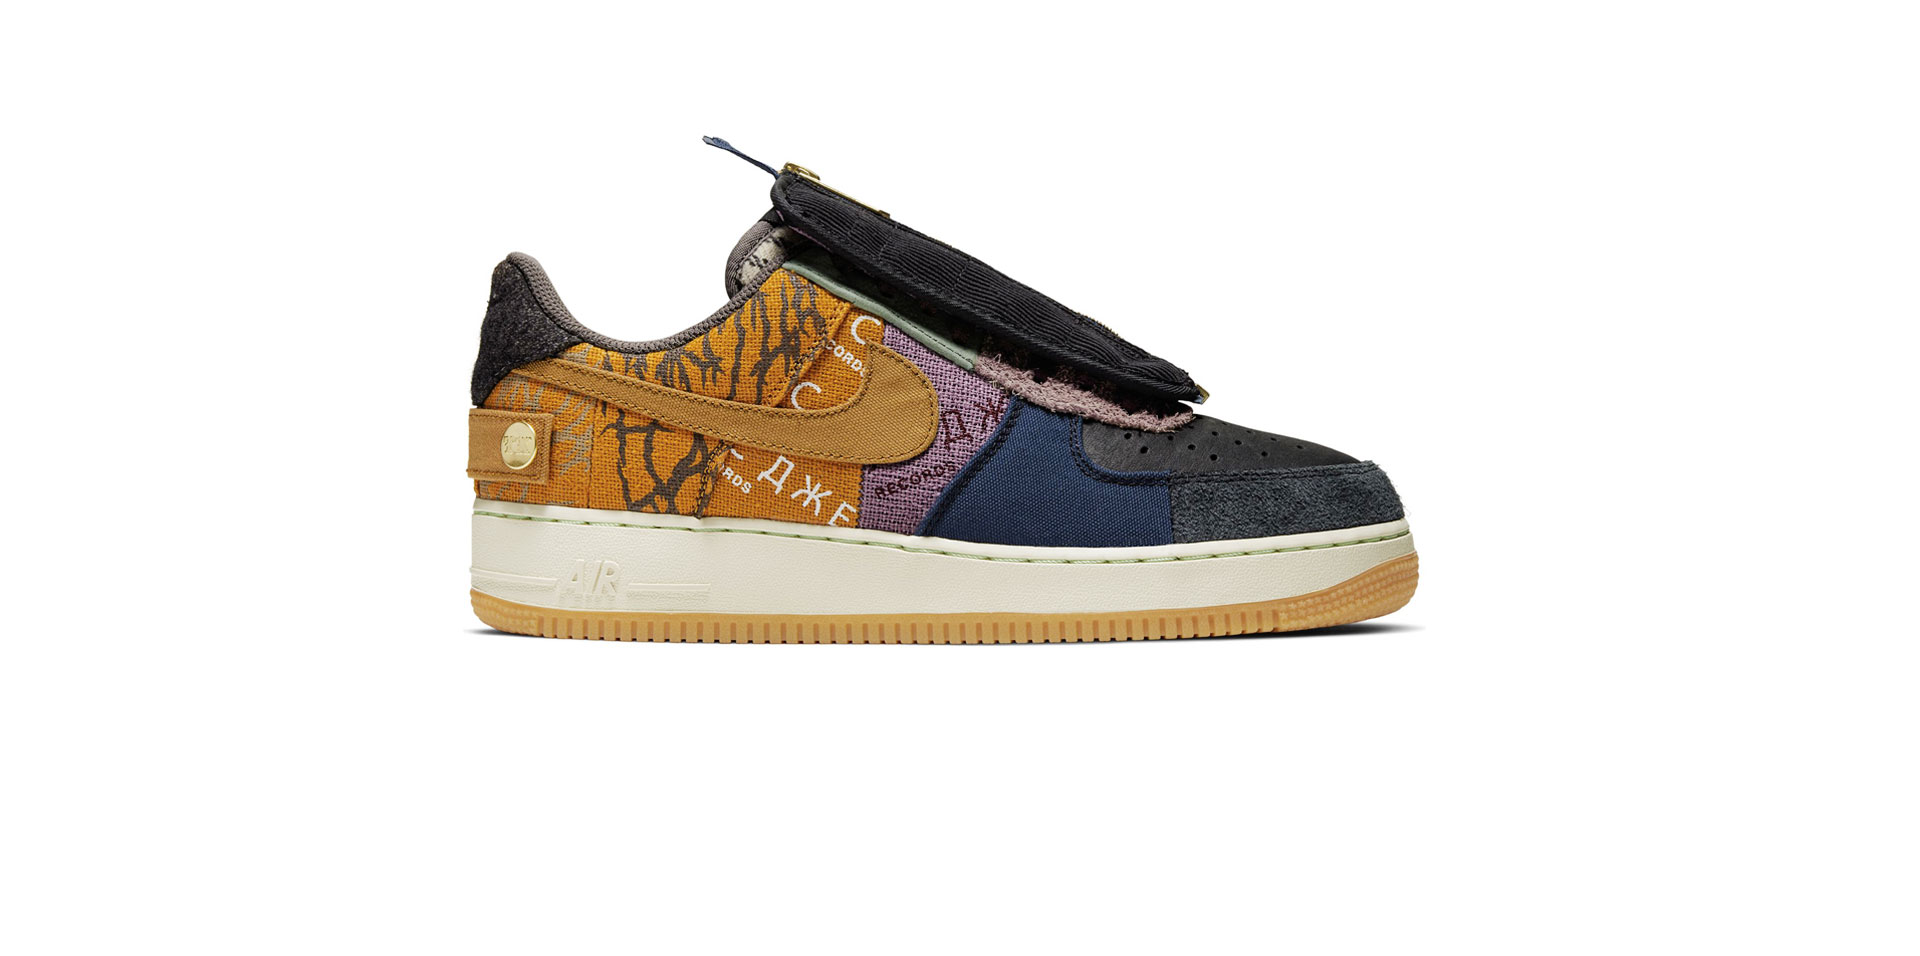 NIKE AIR FORCE 1 X CACTUS JACK - MULTI-COLOR/MUTED BRONZE-FOSSIL